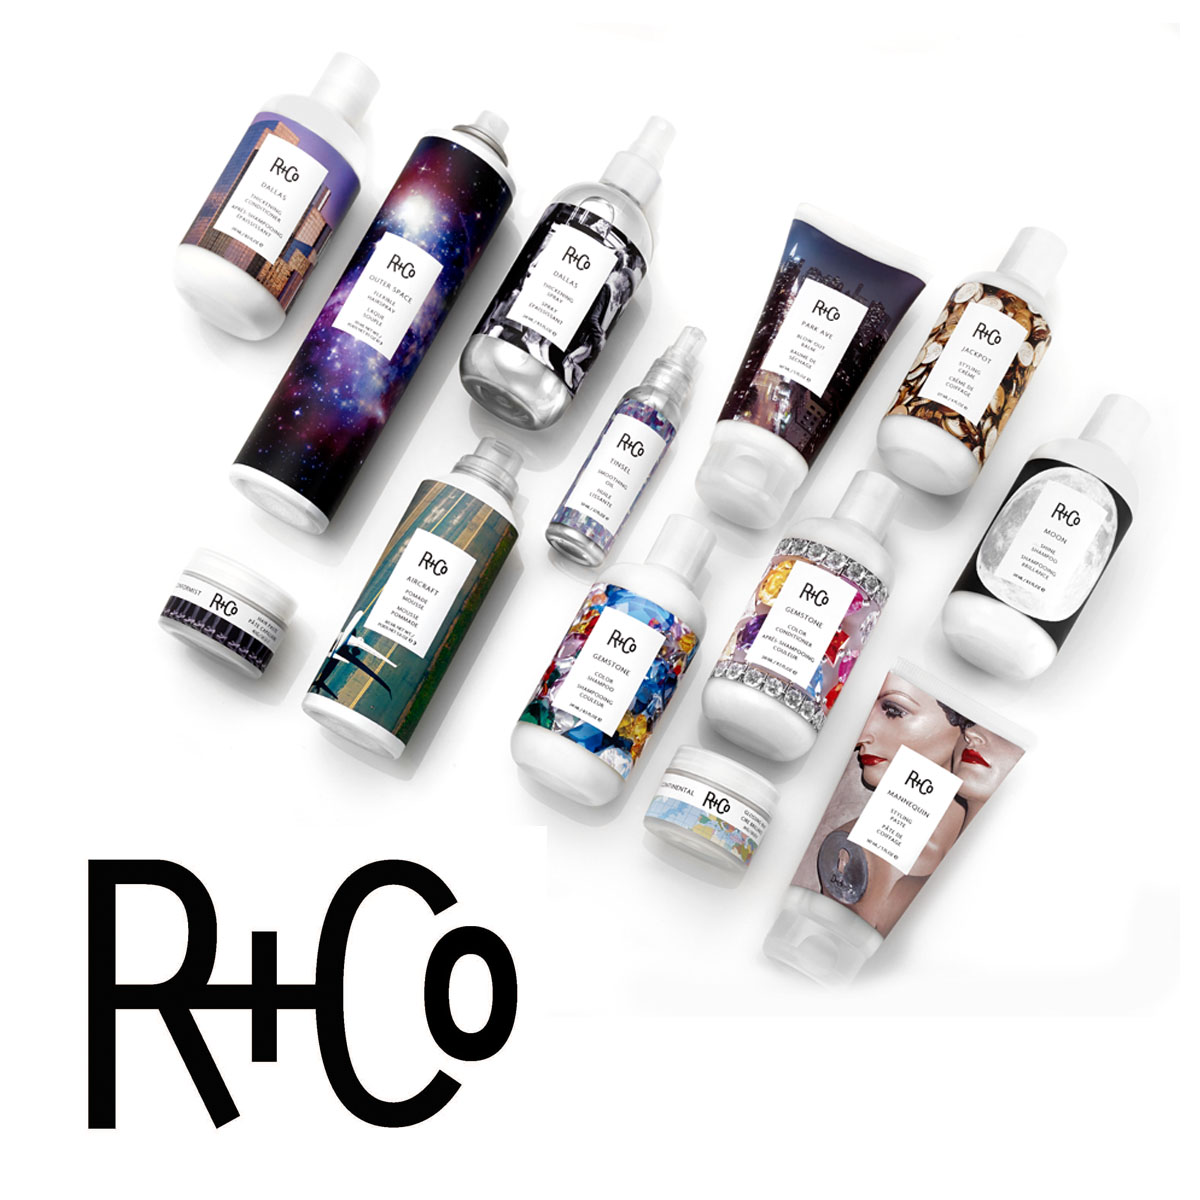 R+Co is about an experience.    R+Co  is a collective of some of the most forward-thinking, rule-bending hairstylists in the business. We are a think tank of top editorial and salon stylists and educators—with a combined century of hairdressing knowledge and experience—and we make sure that we have more than one viewpoint on everything we do.    And everything is formulated without parabens, sulfates (SLS or SLES), mineral oil and petrolatum. They are all vegetarian, cruelty-free, gluten-free and color-safe.  R+Co is about an experience. The packaging and fragrances were designed to enhance that experience and evoke a feeling, place, style or attitude. You'll know just by looking at a bottle or tube what a product is meant to do, and the subtle yet sophisticated fragrances—meant for both men and women—are as individual as the members of our collective.